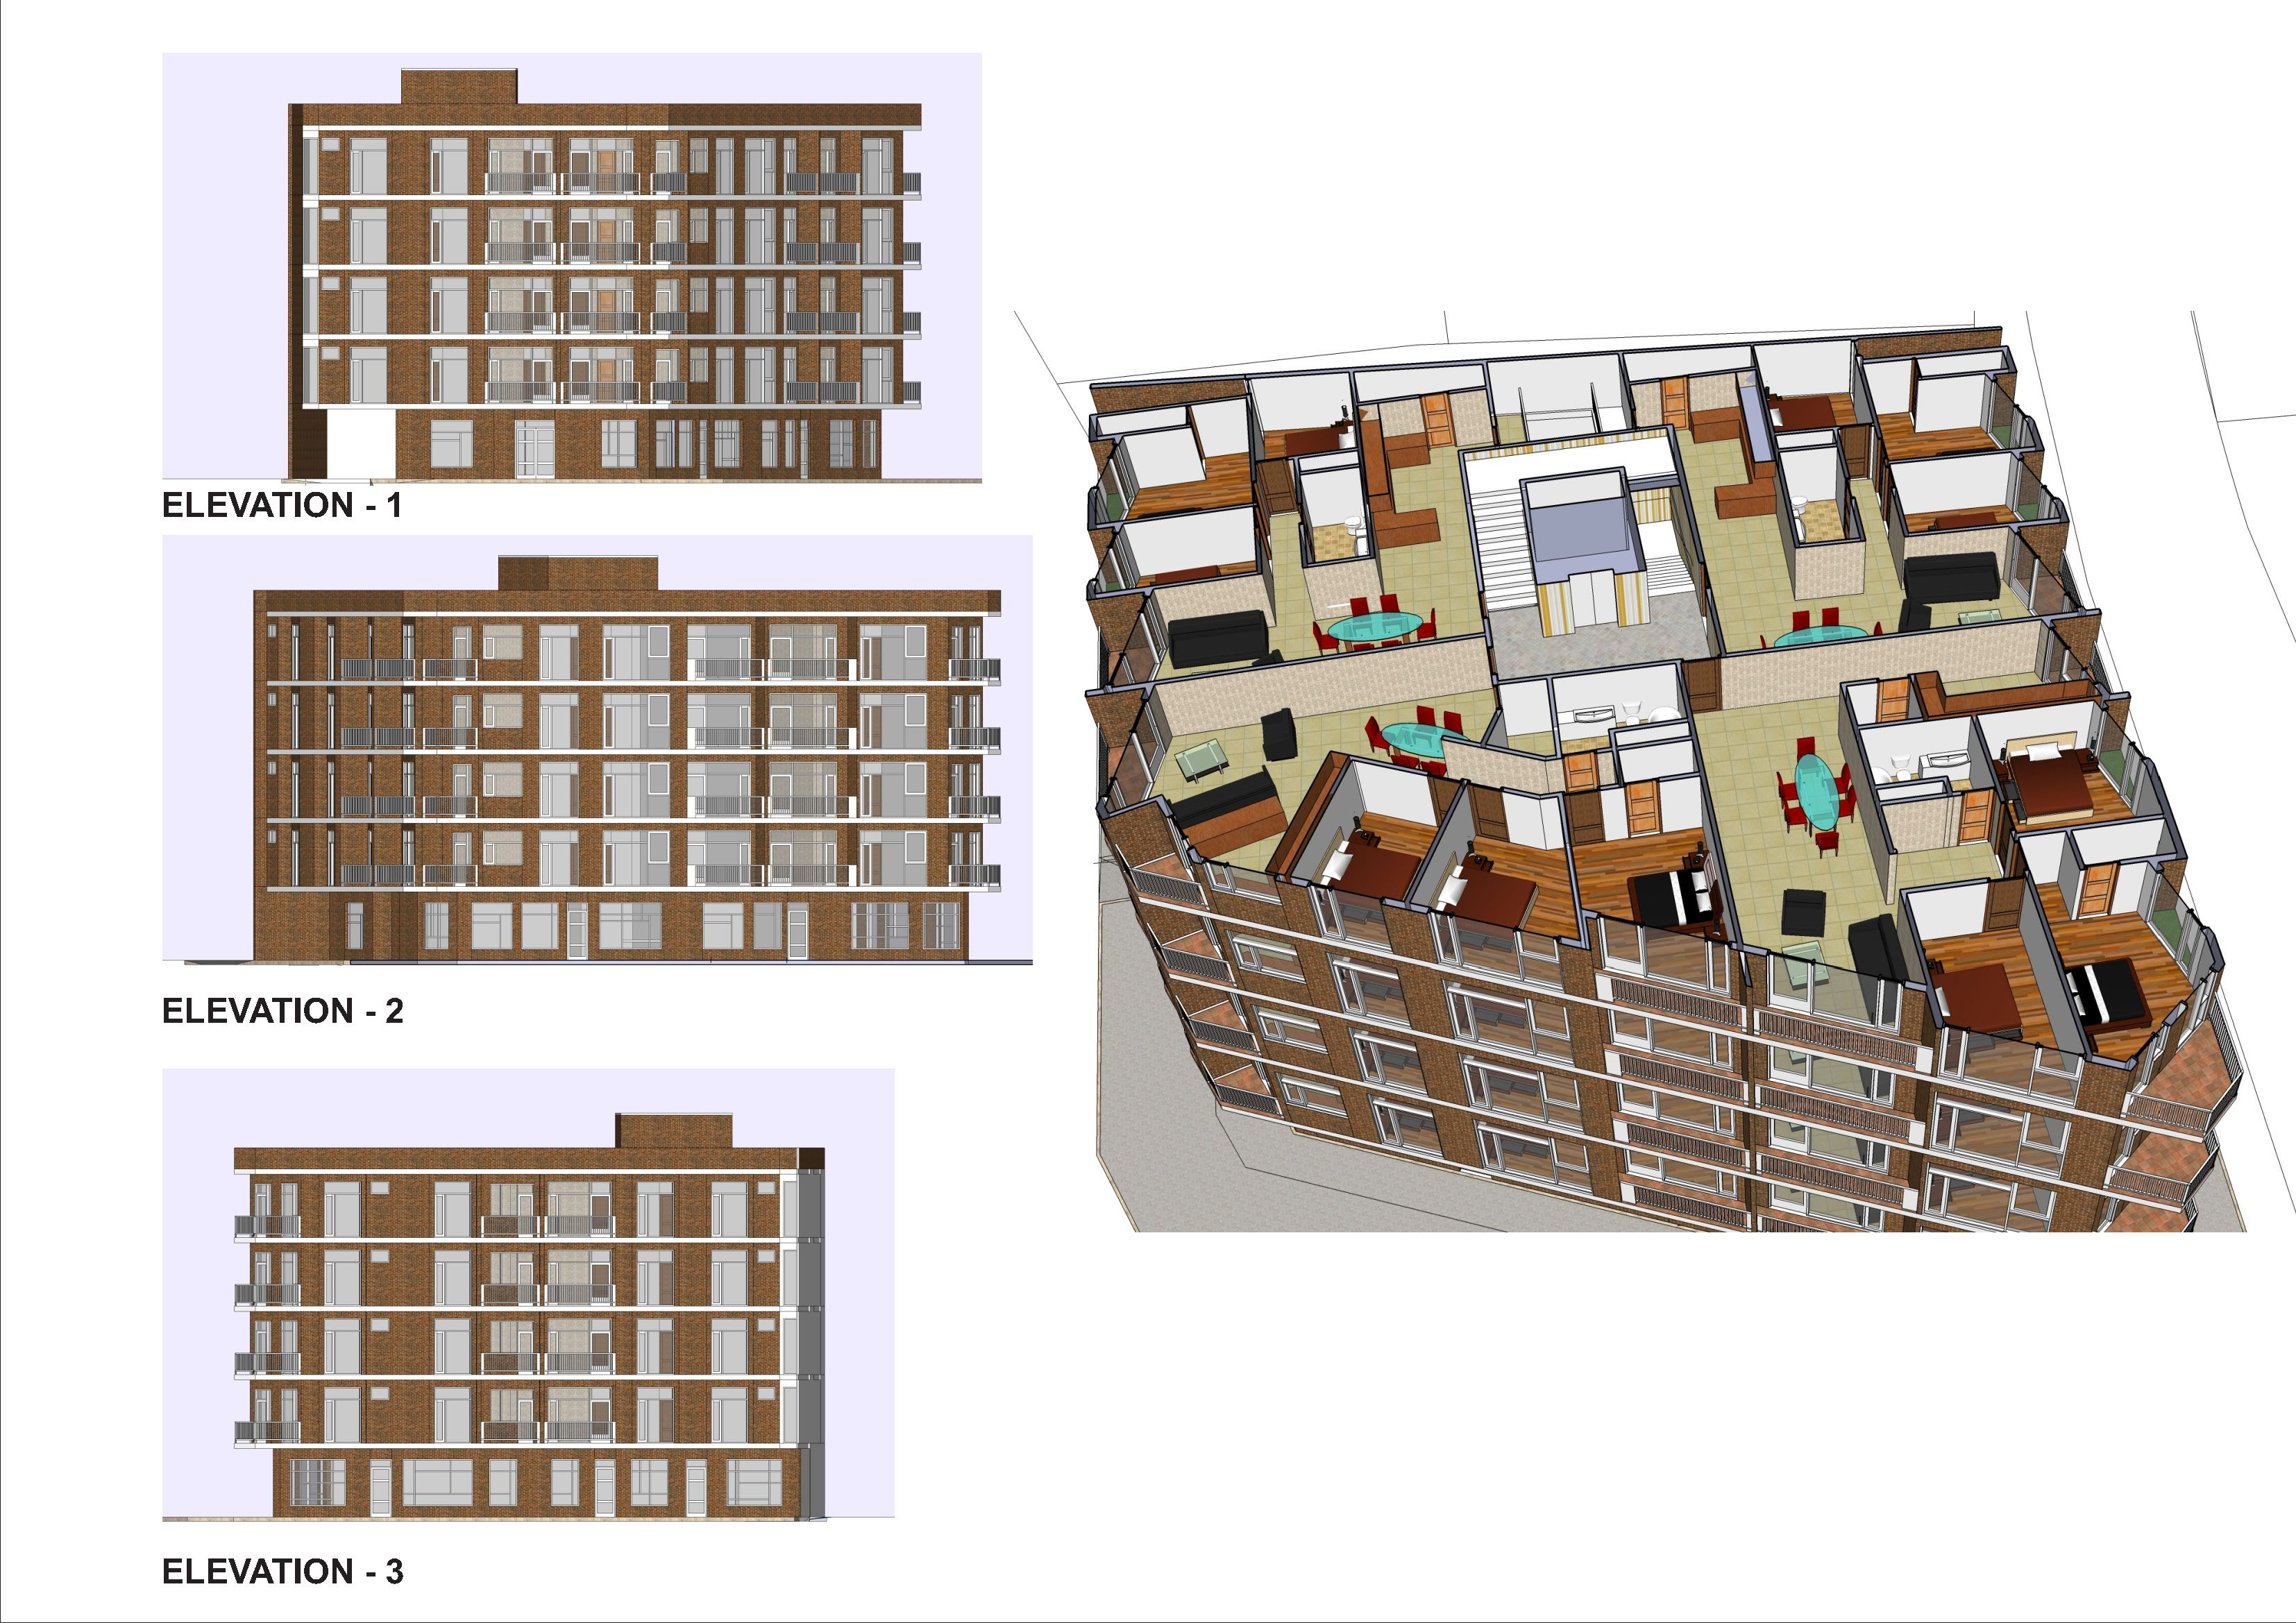 Apartment building plans location aksaray turkey new for Building layout plan free